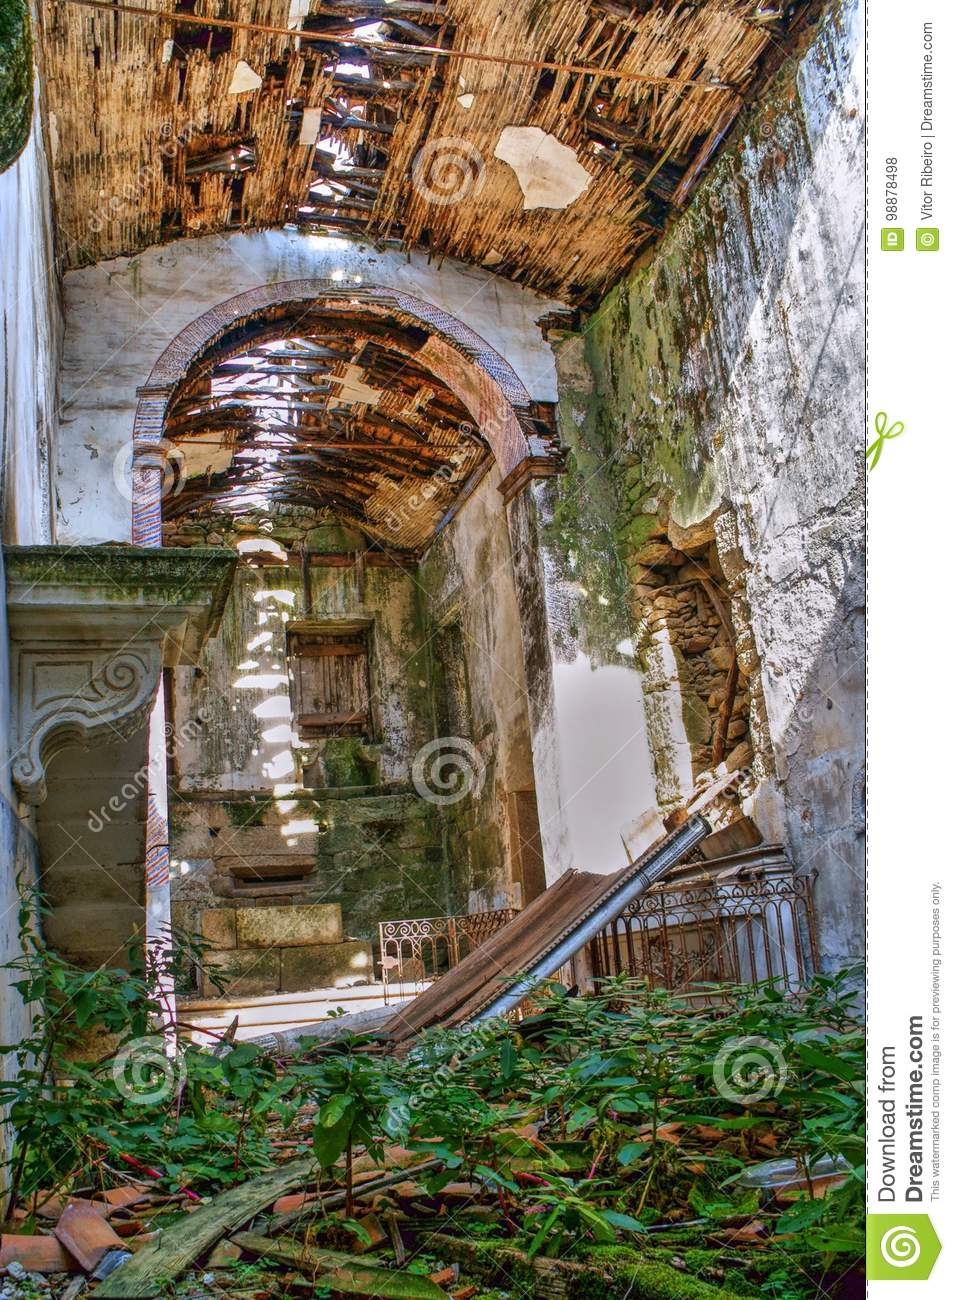 Download Ruined church stock photo. Image of abandoned, indoors - 98878498